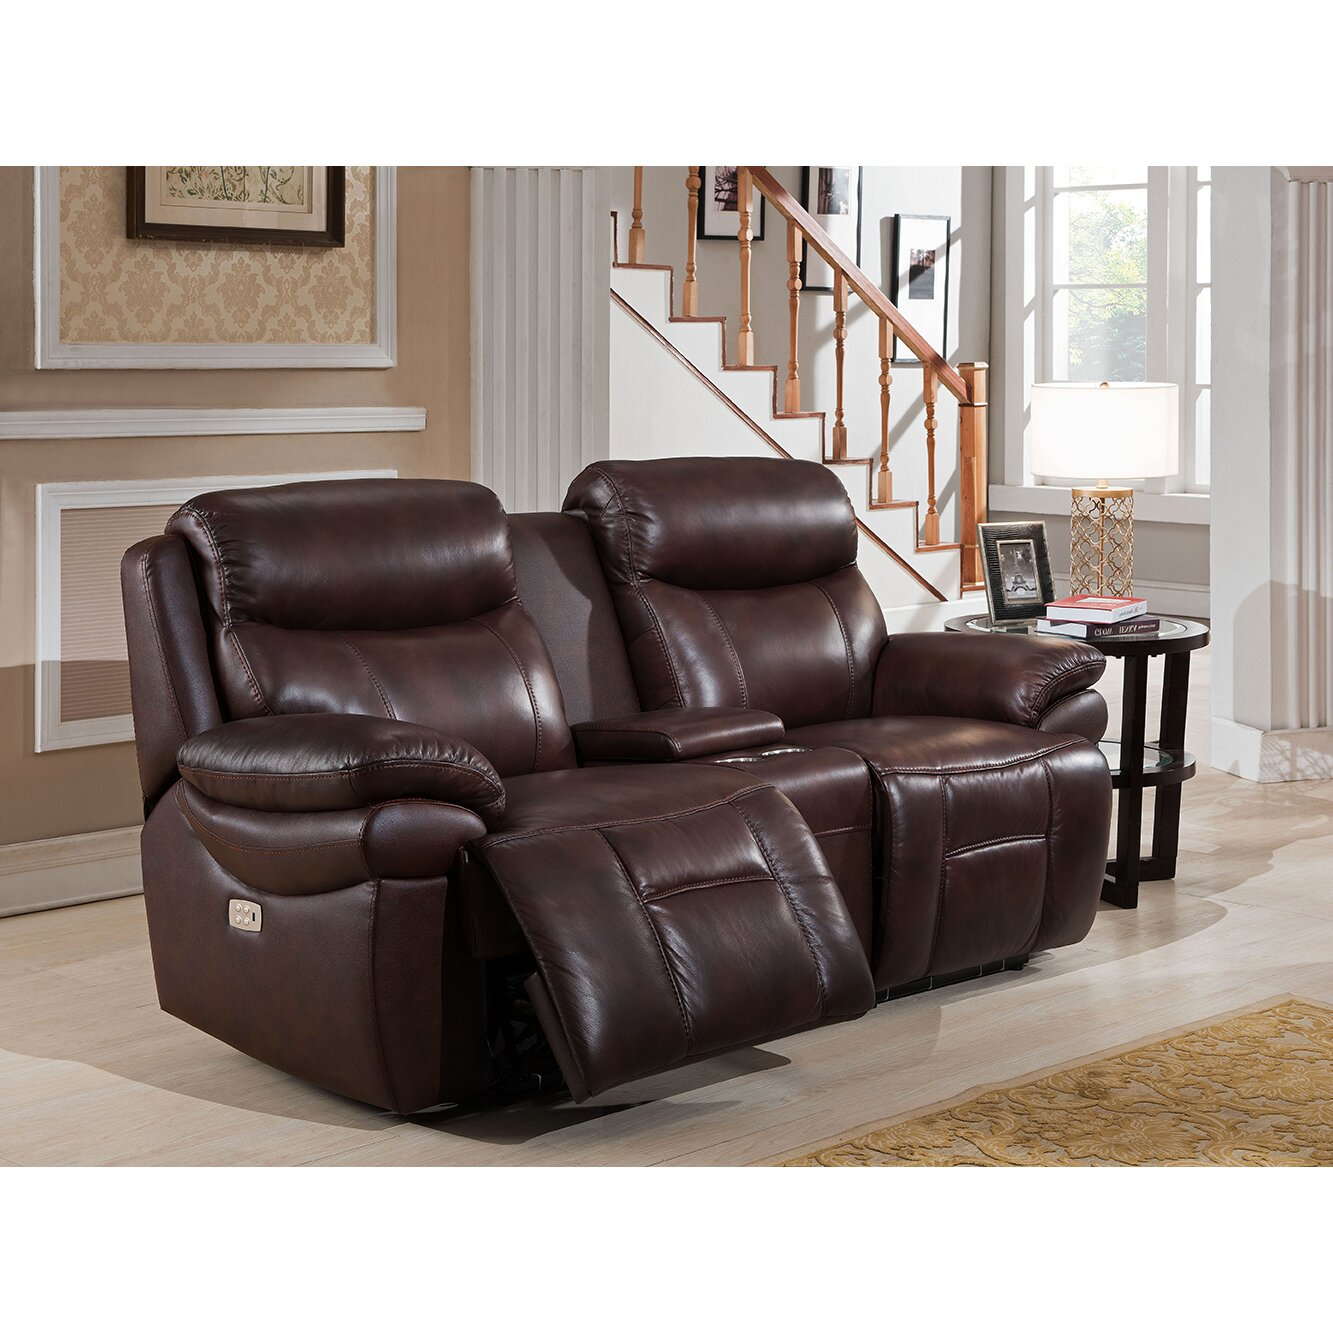 Amax Sanford 3 Piece Leather Power Reclining Living Room